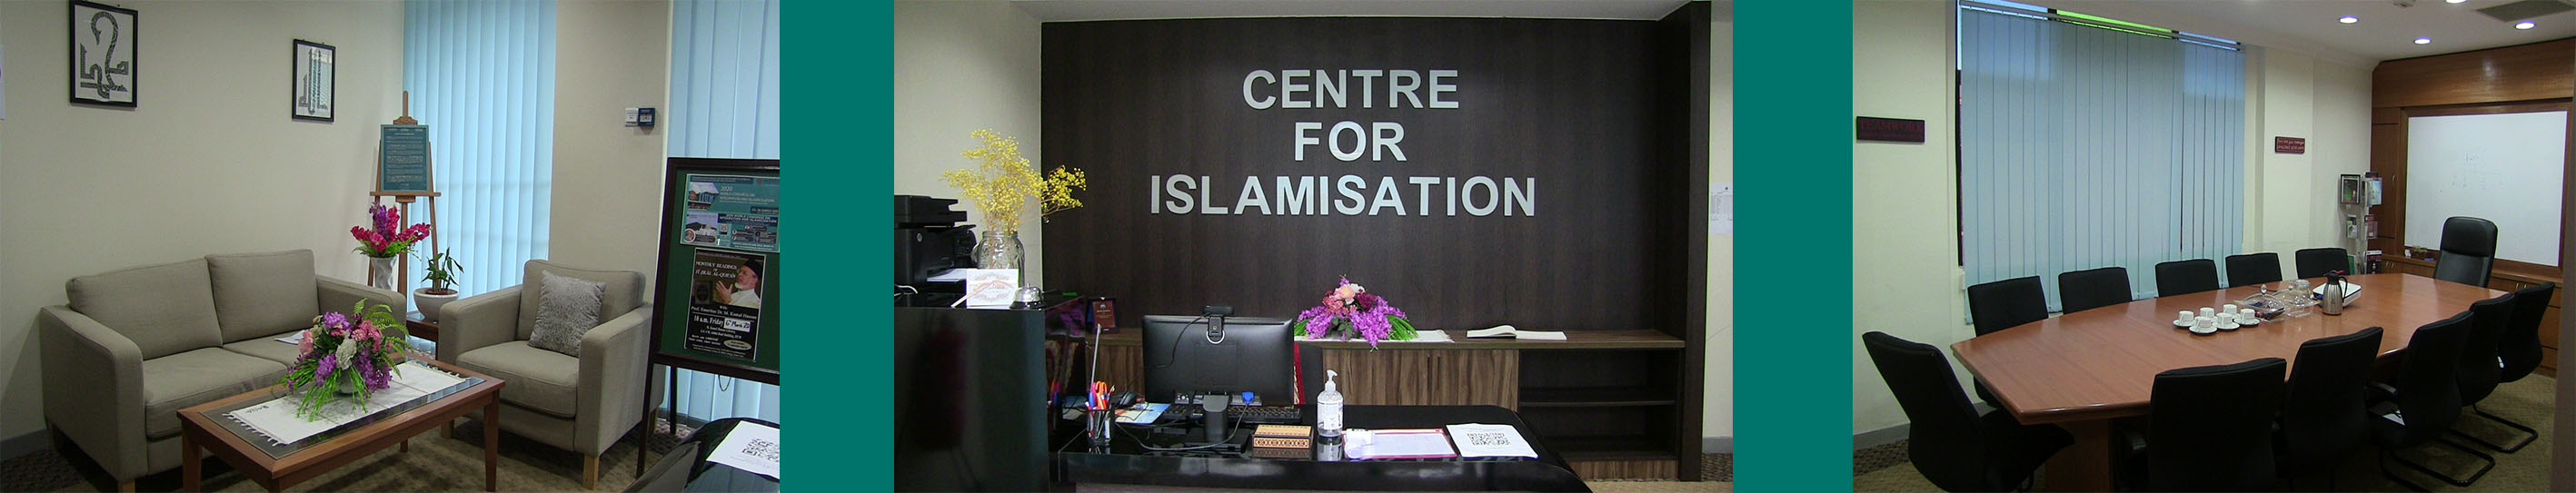 CENTRE FOR ISLAMISATION